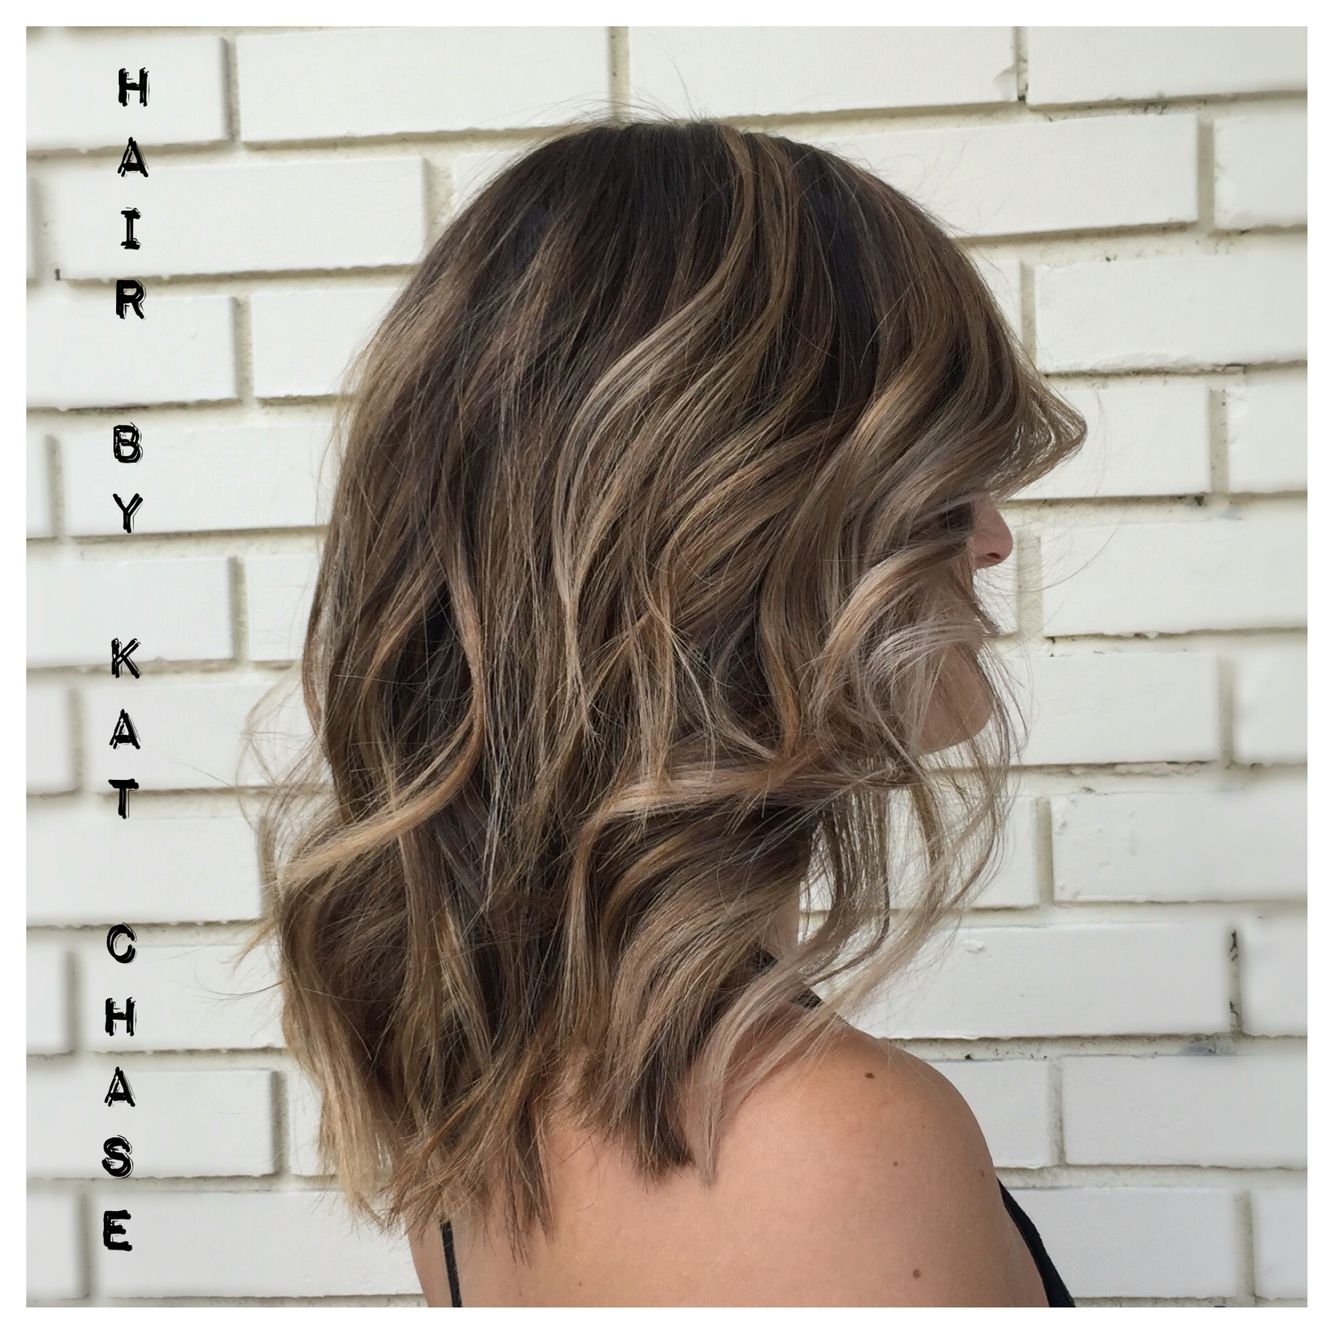 ash blonde balayage highlights on medium hair | hair portfolio